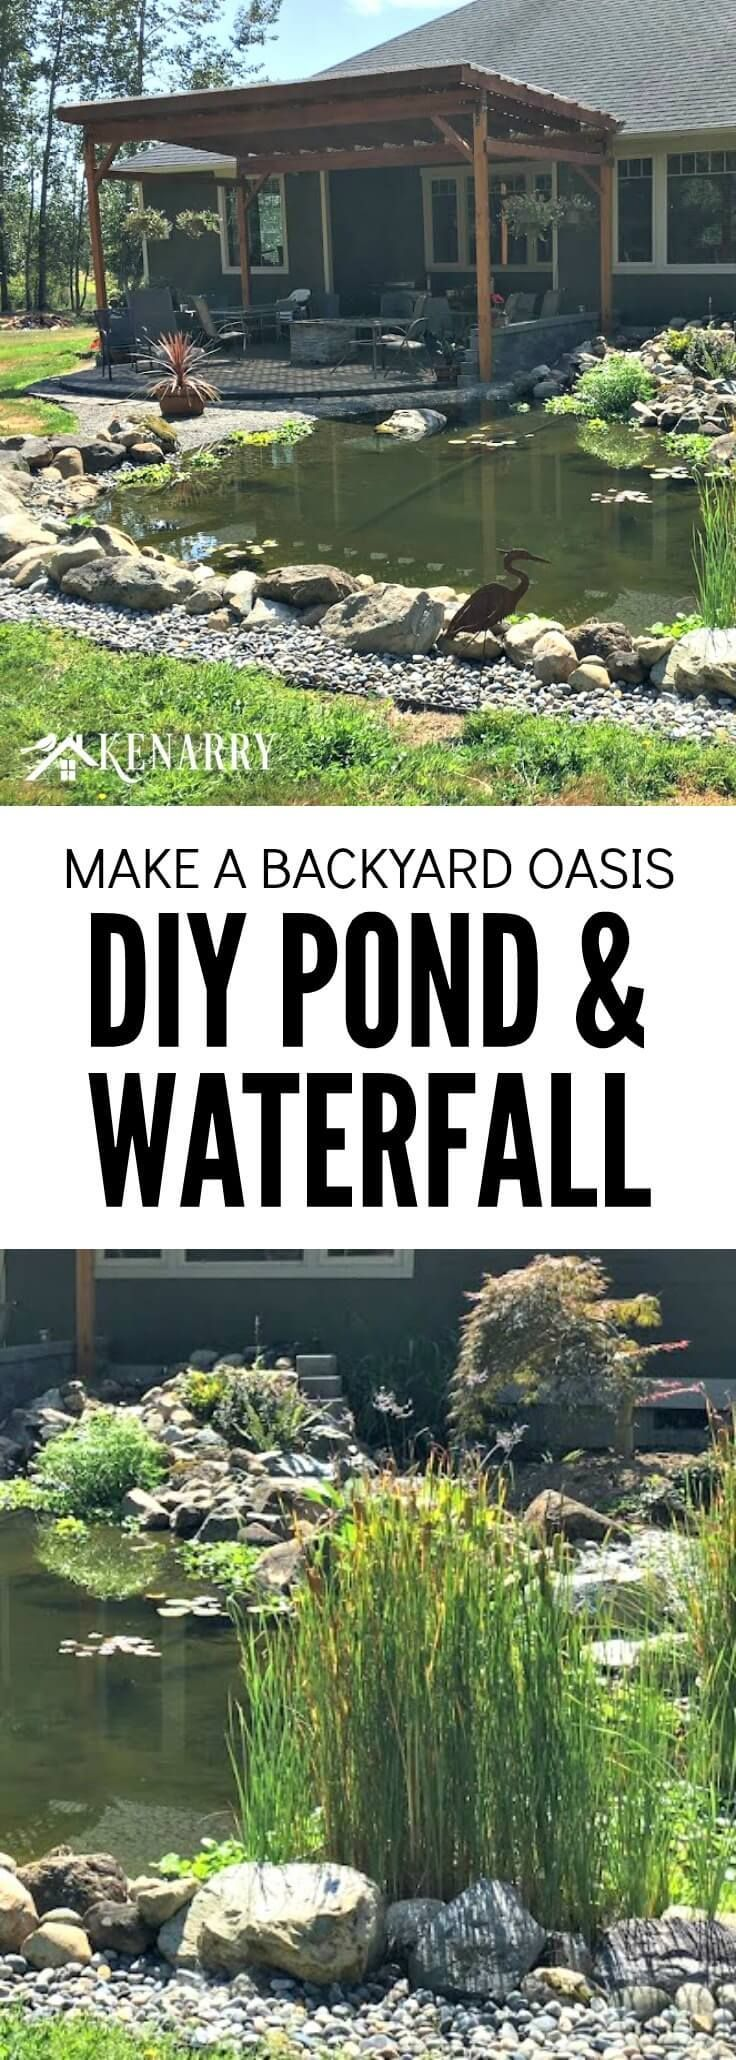 a tutorial to make a homemade waterfall in a pond How to build a backyard pond and waterfall how to build a backyard pond and waterfall building a pond takes time and detailed planning  it is important to make .